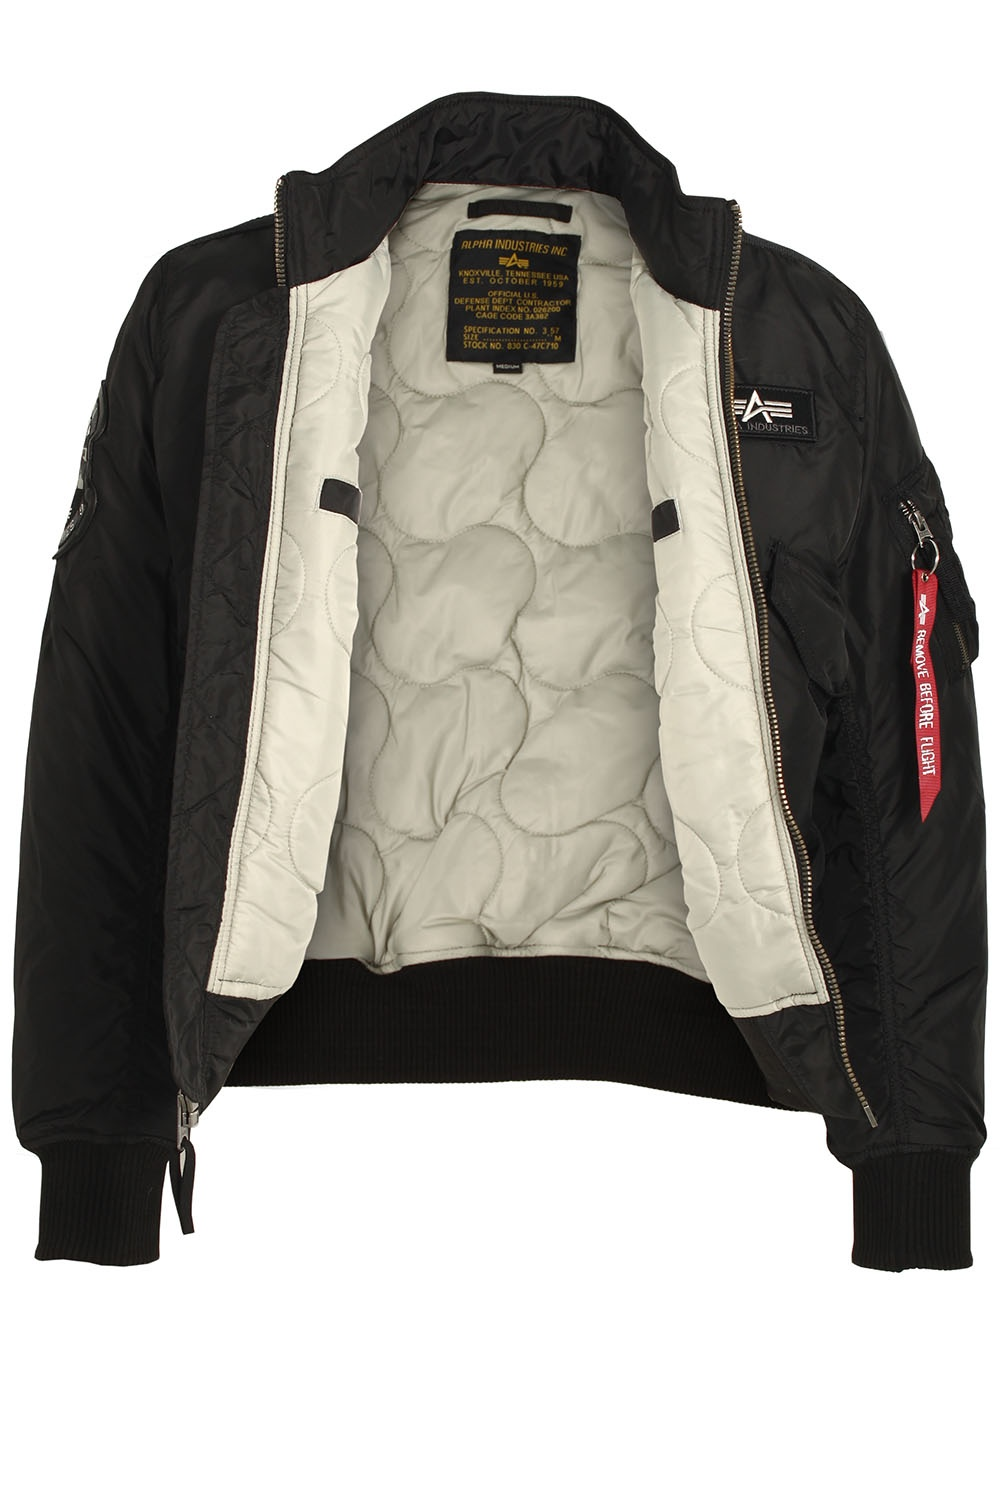 alphan industries engine jacket black shop alpha industries jackets. Black Bedroom Furniture Sets. Home Design Ideas